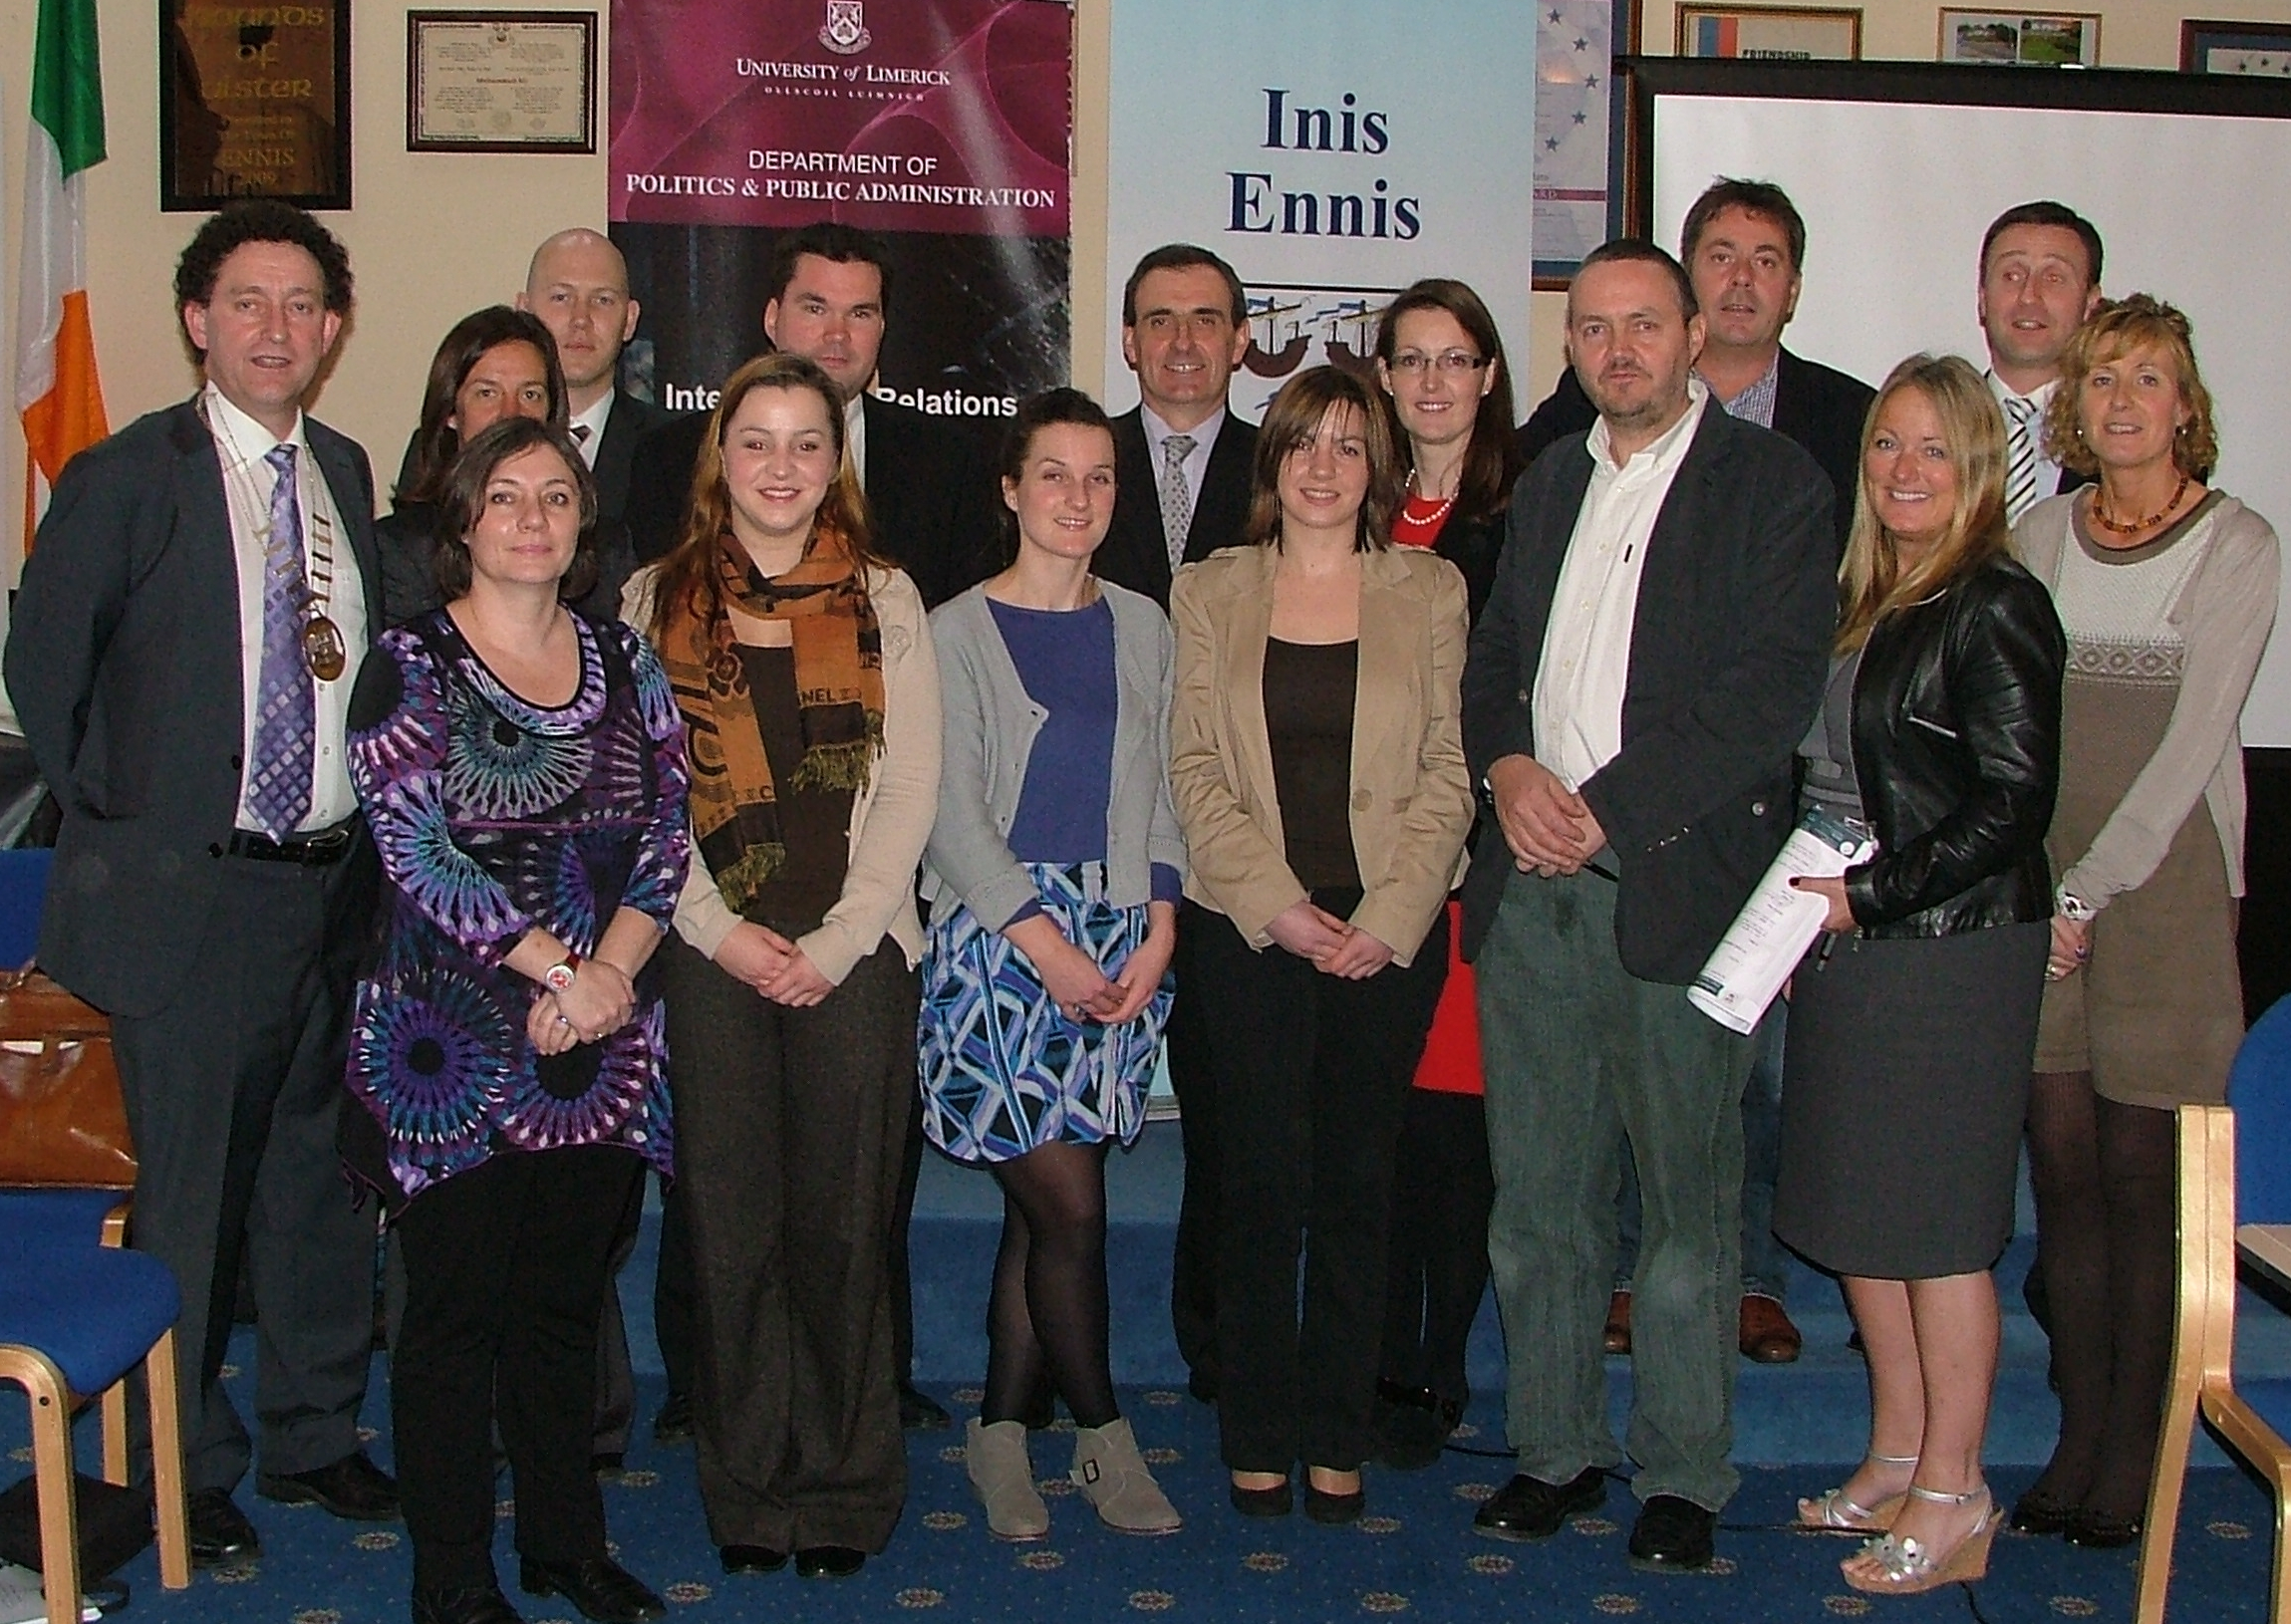 Town Officials with UL staff and students at Launch of Ennis 2020